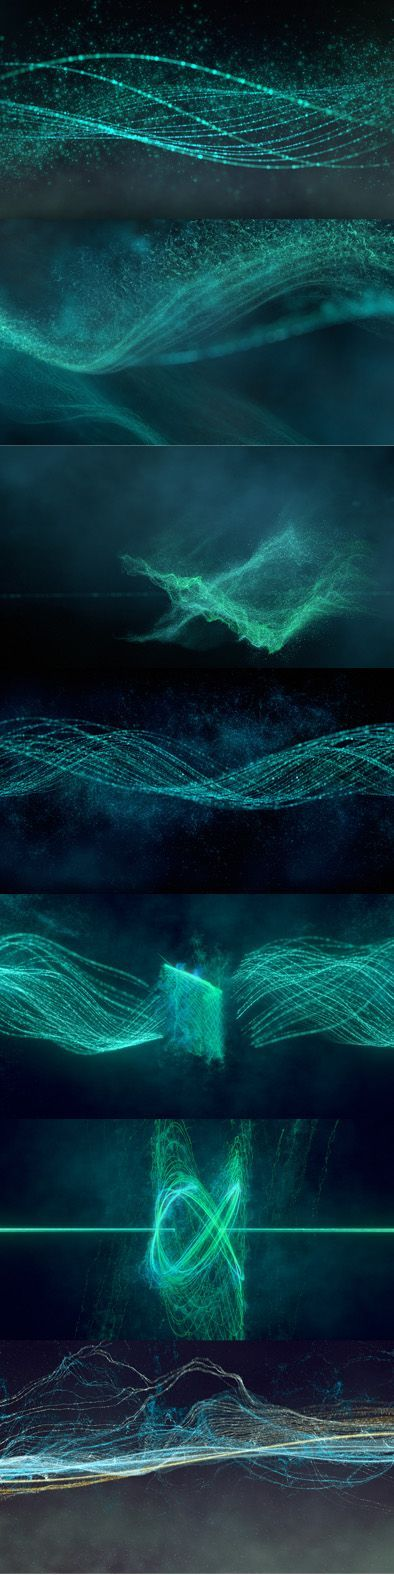 'Oscillate' - Thesis Animation of Sine Waves by Daniel Sierra: